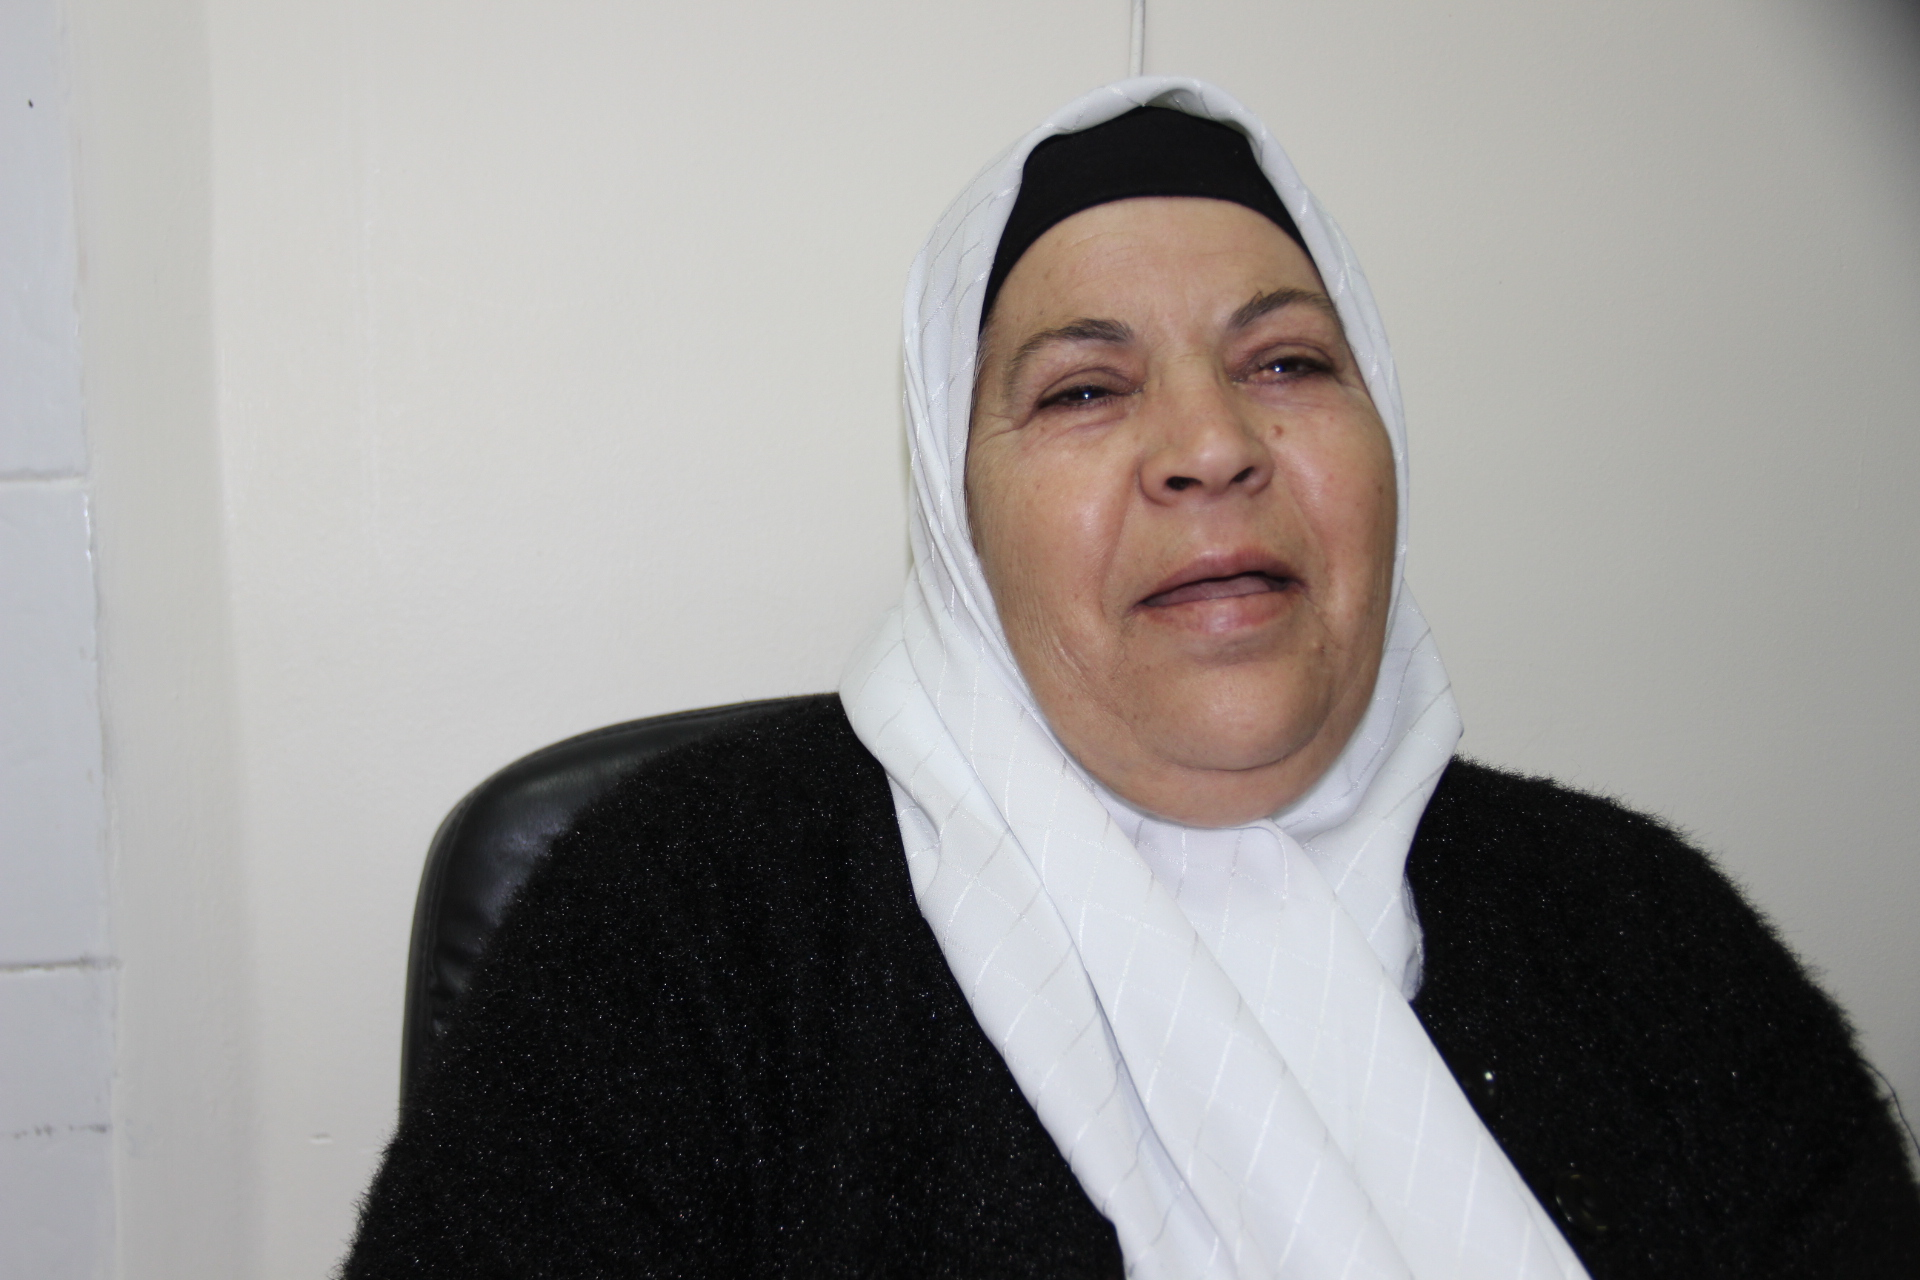 Improving Vision and Well-Being in Palestine